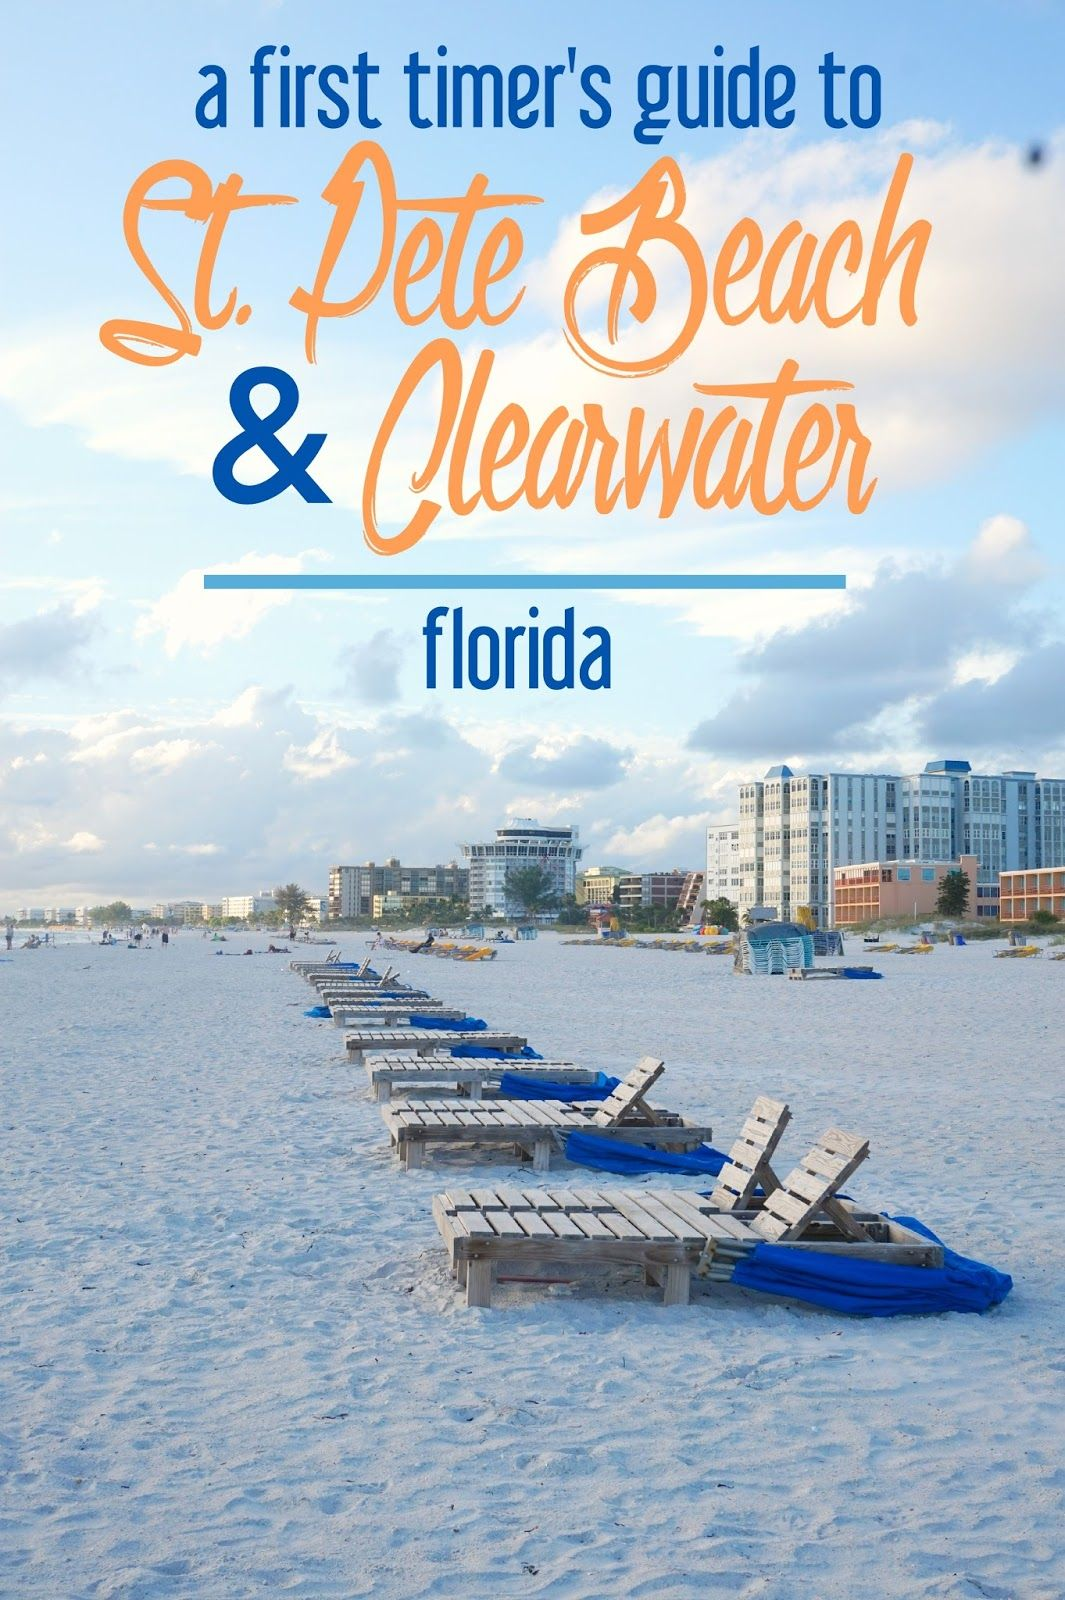 A FirstTimer's Guide to St. Pete Beach, Florida Where to